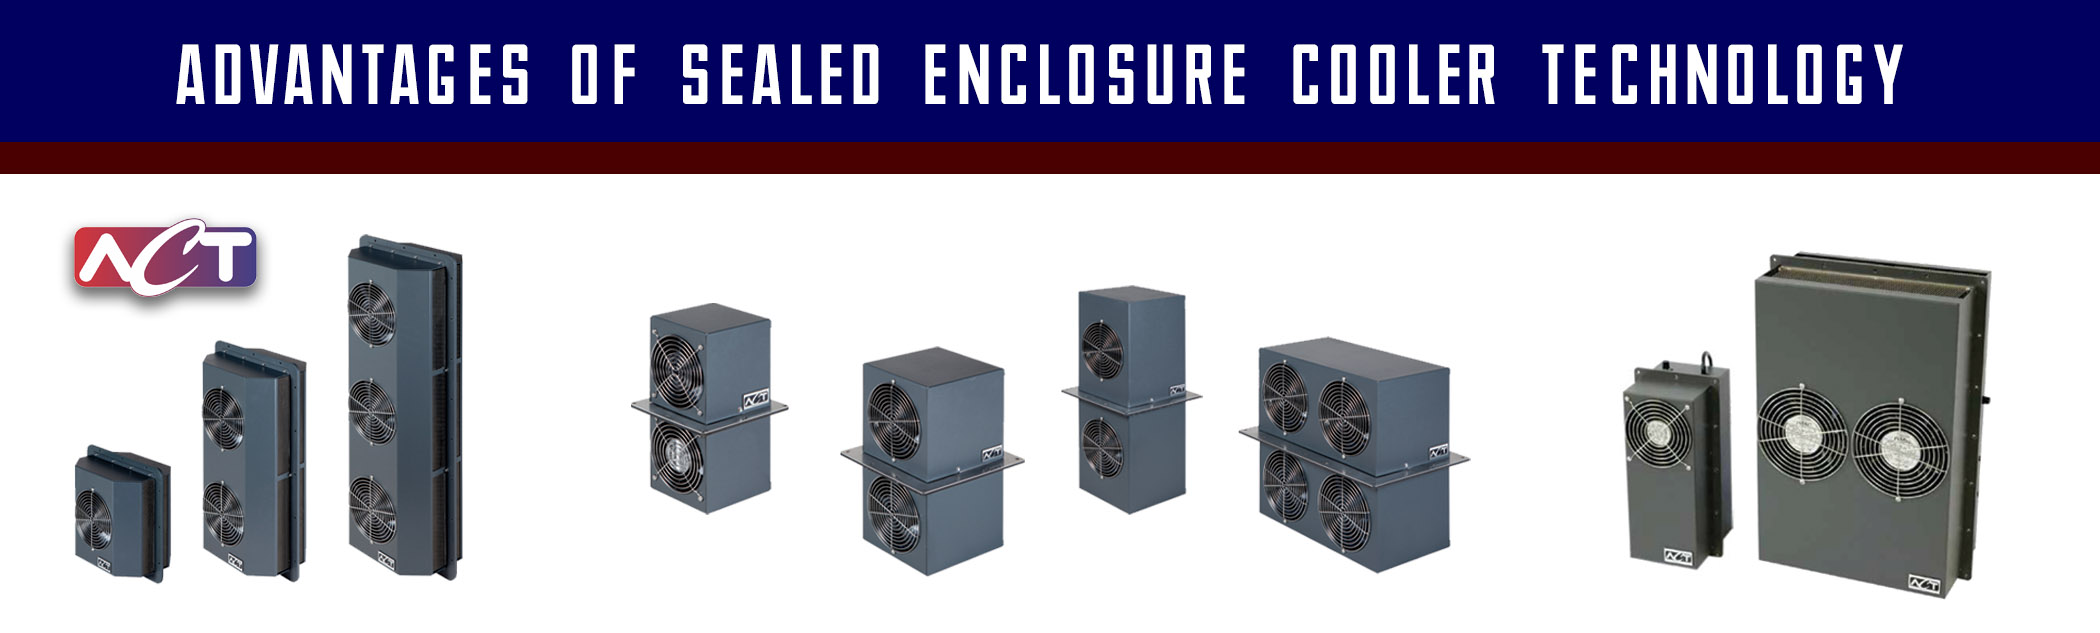 Advantages of sealed enclosure cooling technology from ACT